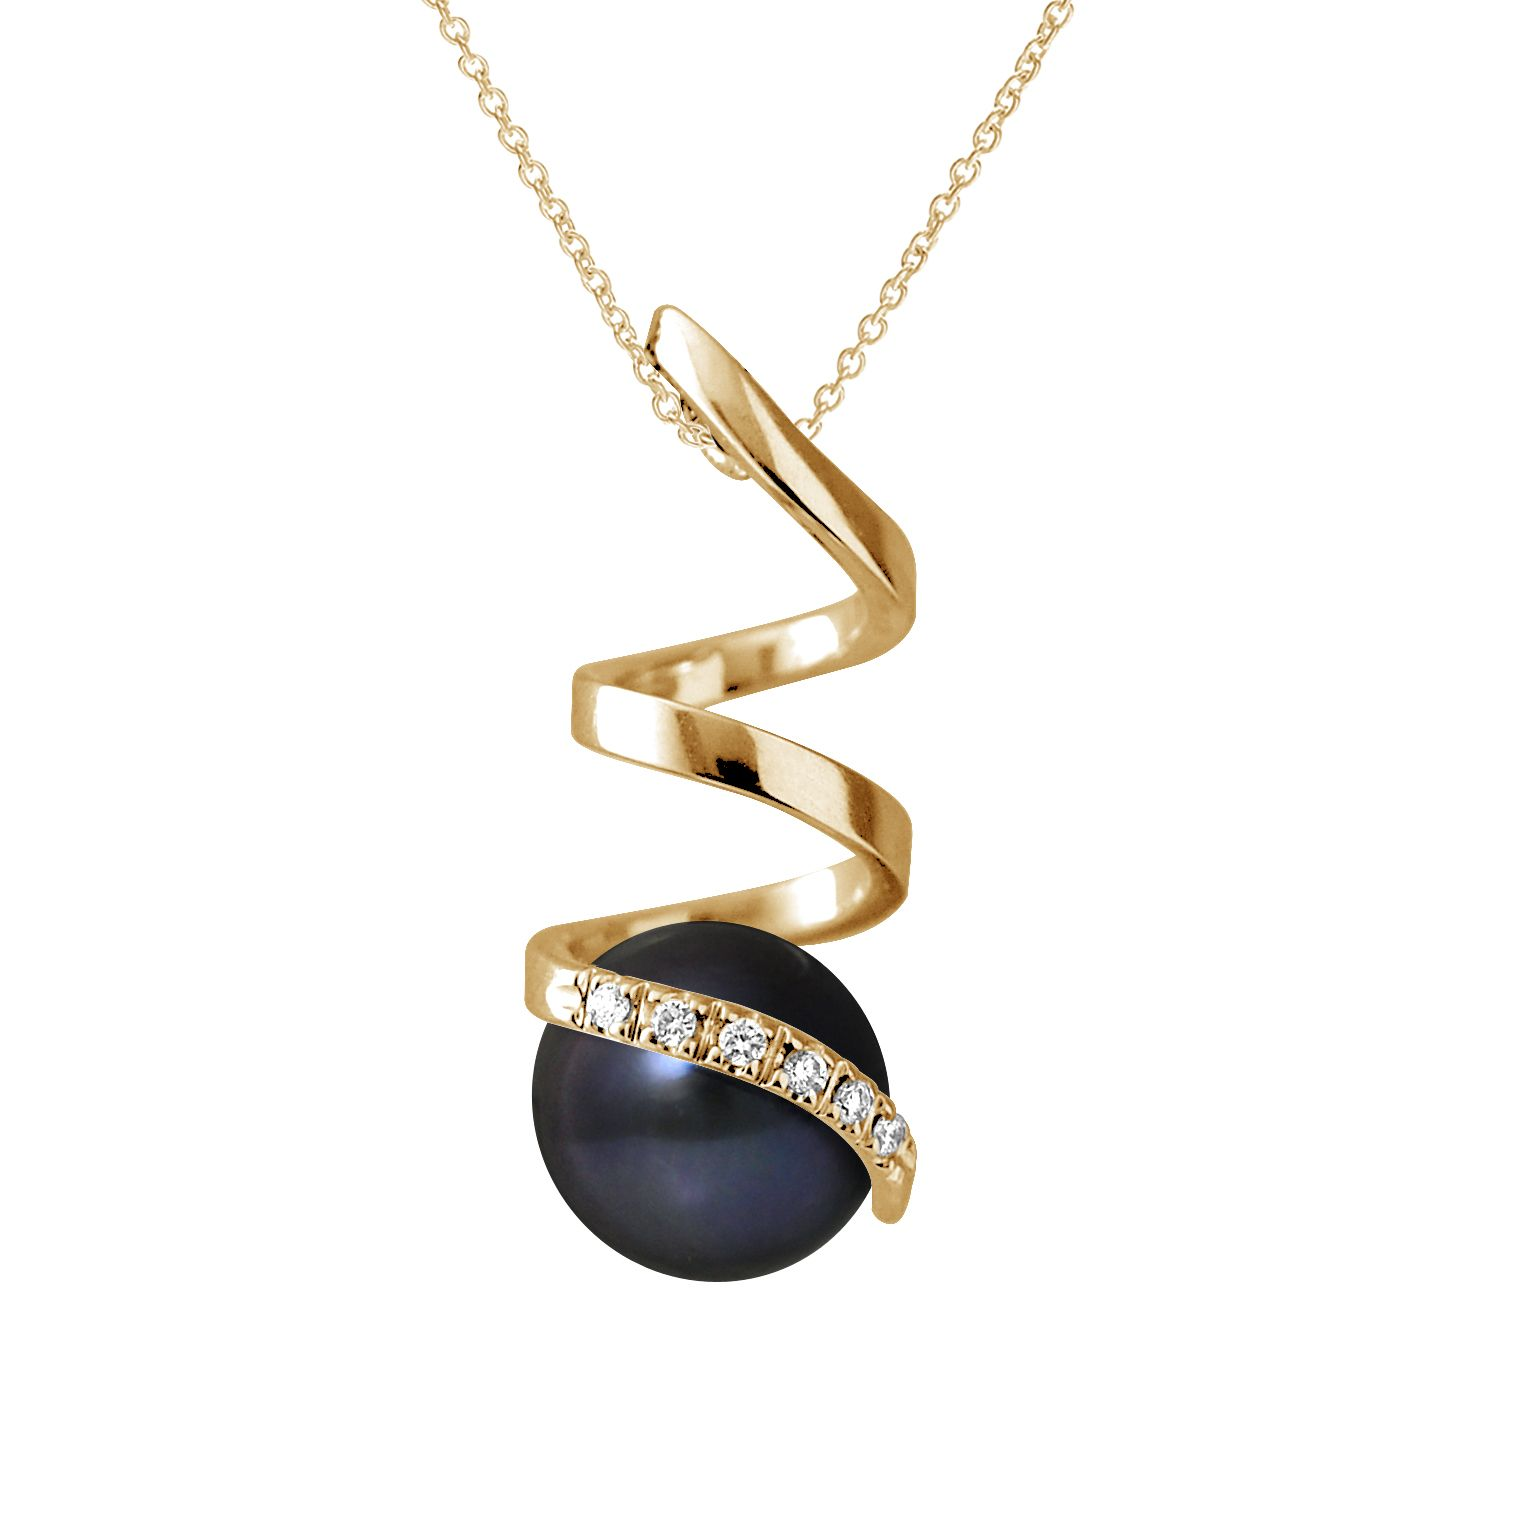 DIADEMA - Pendant - Yellow Gold and Real Freshwater Pearls - Black